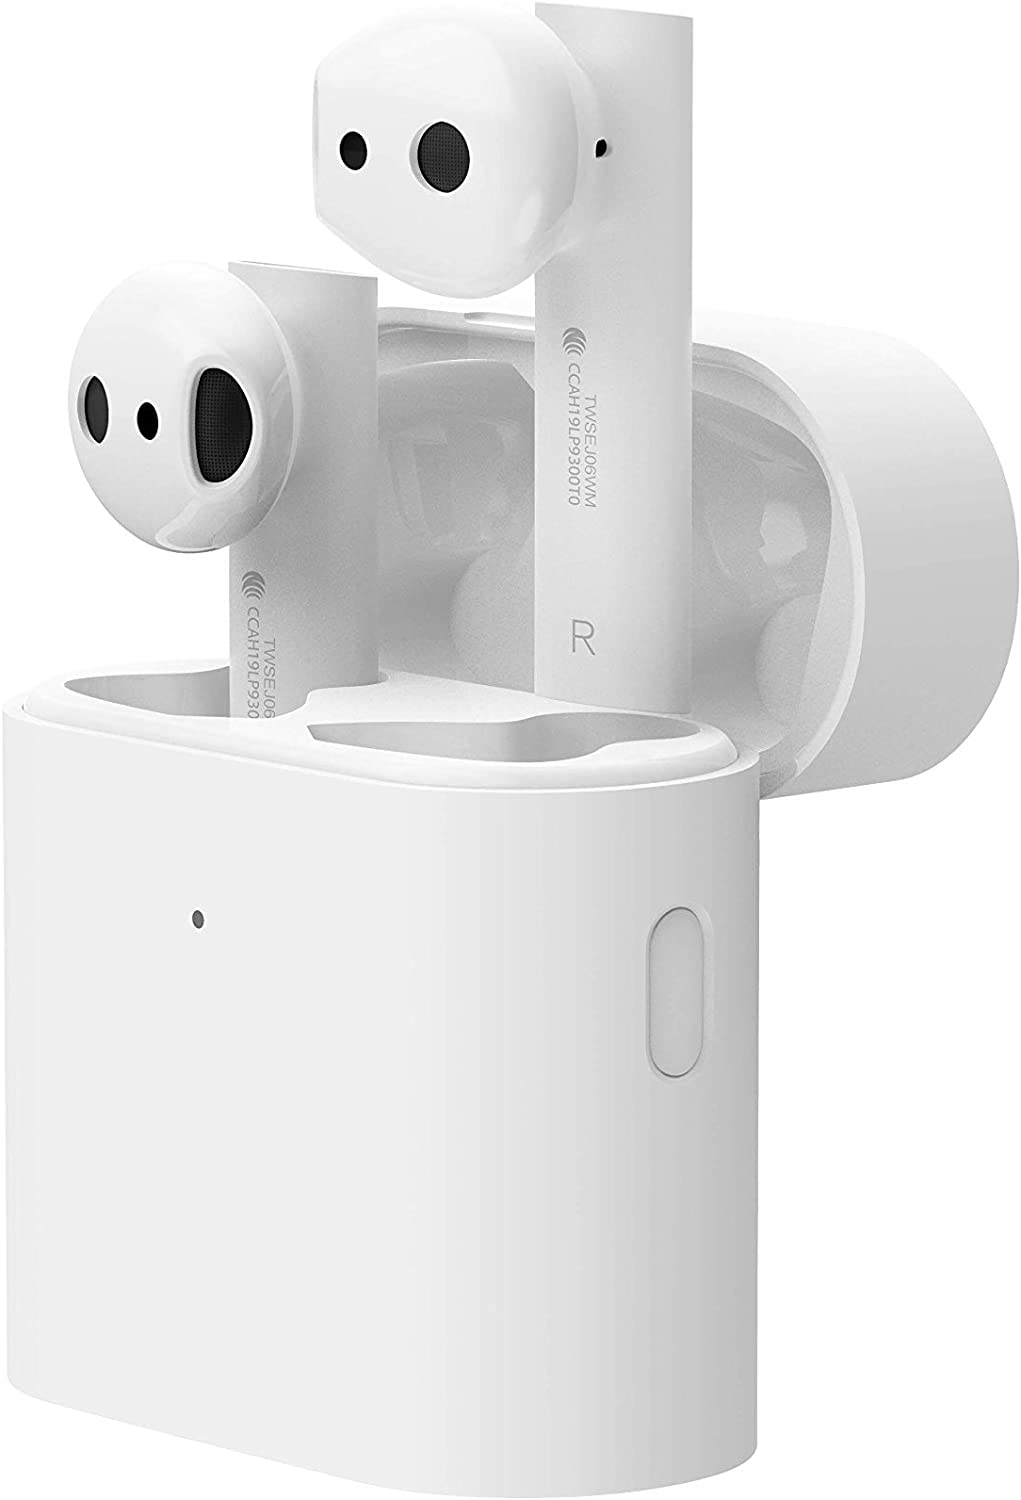 Xiaomi Mi True Wireless Earphones 2, Auriculares inalámbricos sin Cables, conexión Bluetooth 5.0, Control Doble Tap, Audio Codec SBC, AAC, LHDC, Compatible con Dispositivos iOS y Android